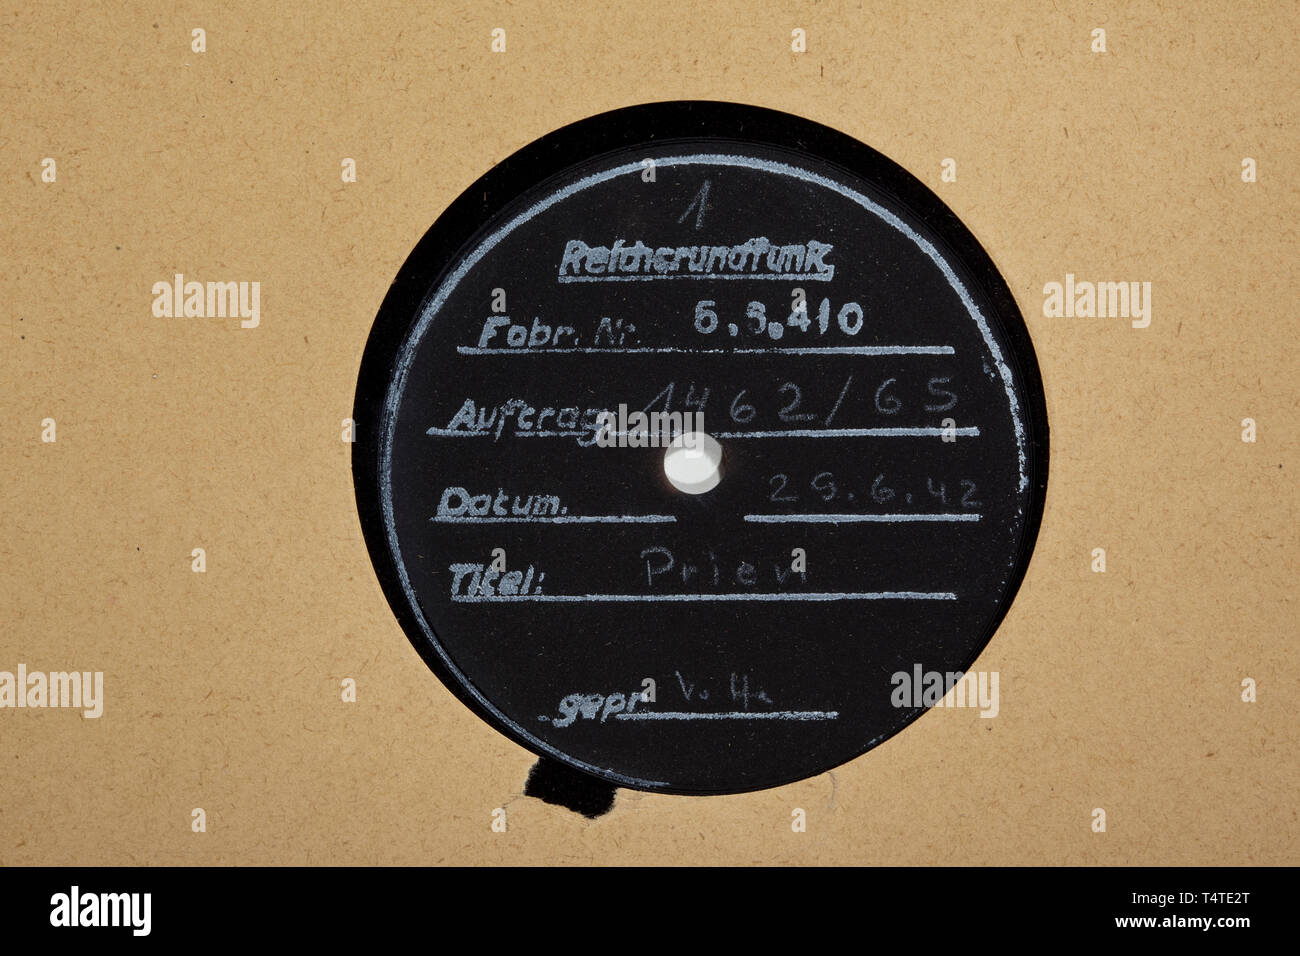 Korvettenkapitän Günther Prien - seven wax records from the German Radio Broadcasting Corporation (Reichsrundfunk) with interviews after the attack on Scapa Flow in 1939, Five double-sided and two one-sided records with interviews from the years 1939/40, all labelled 'Reichsrundfunk', 'Auftr.Nr.', 'Datum' each of the year of minting 1942, with inscriptions 'Prien' or 'Kptlt. Prien'. Optically well-preserved. In slightly damaged paper covers with punched linen margin for filing. Rare audio documents, reissued in 1942 for propaganda purposes to uphold the myth of the Scapa Fl, Editorial-Use-Only - Stock Image